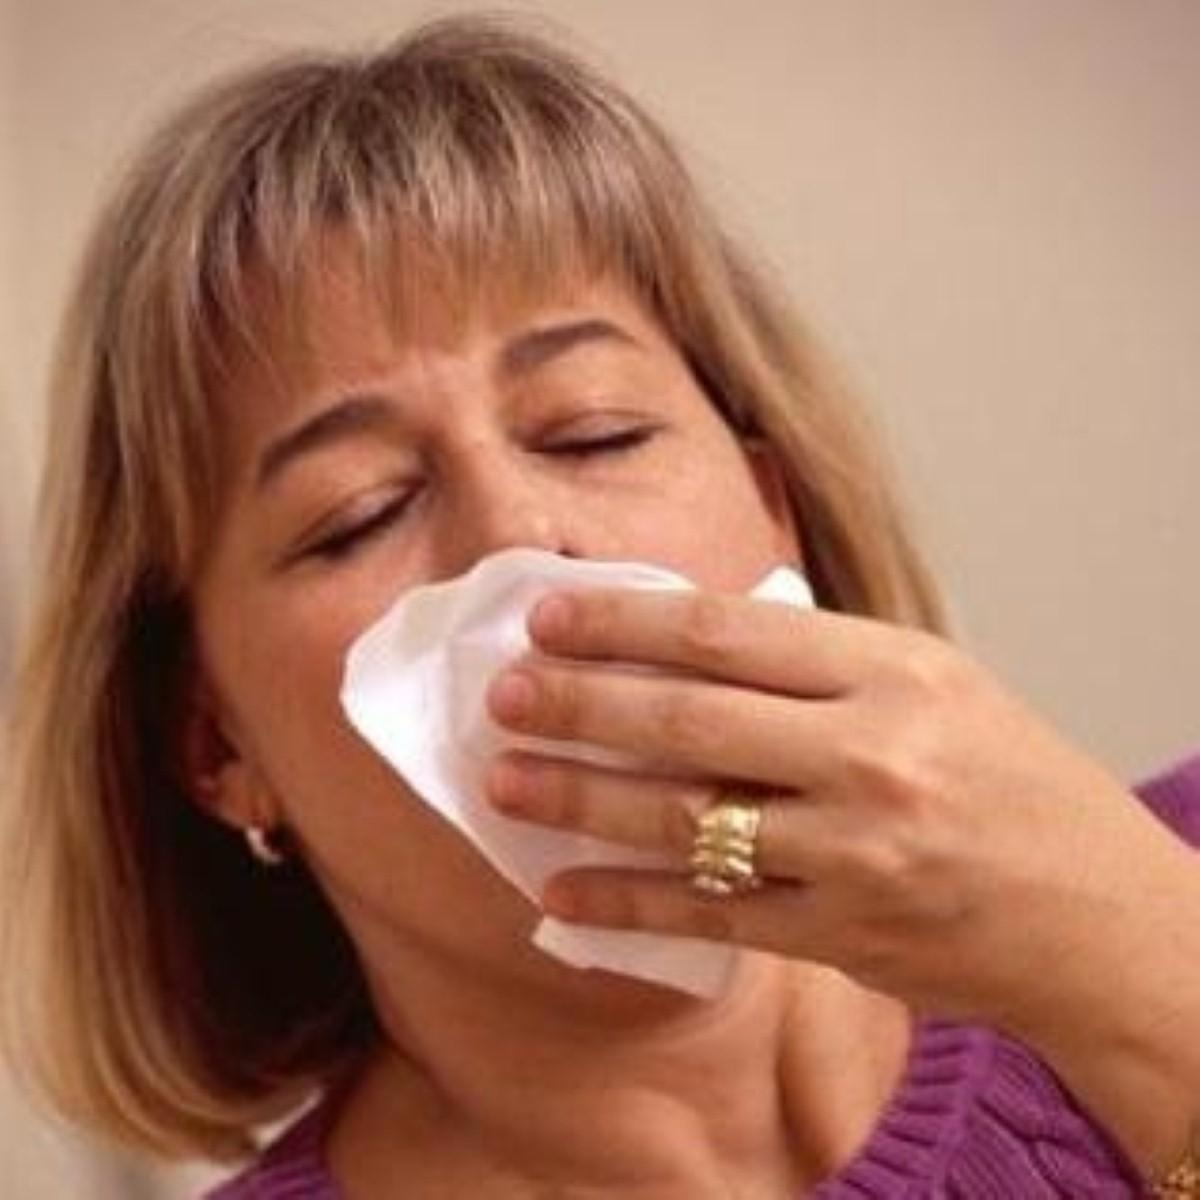 Flu jabs 'not perfect'